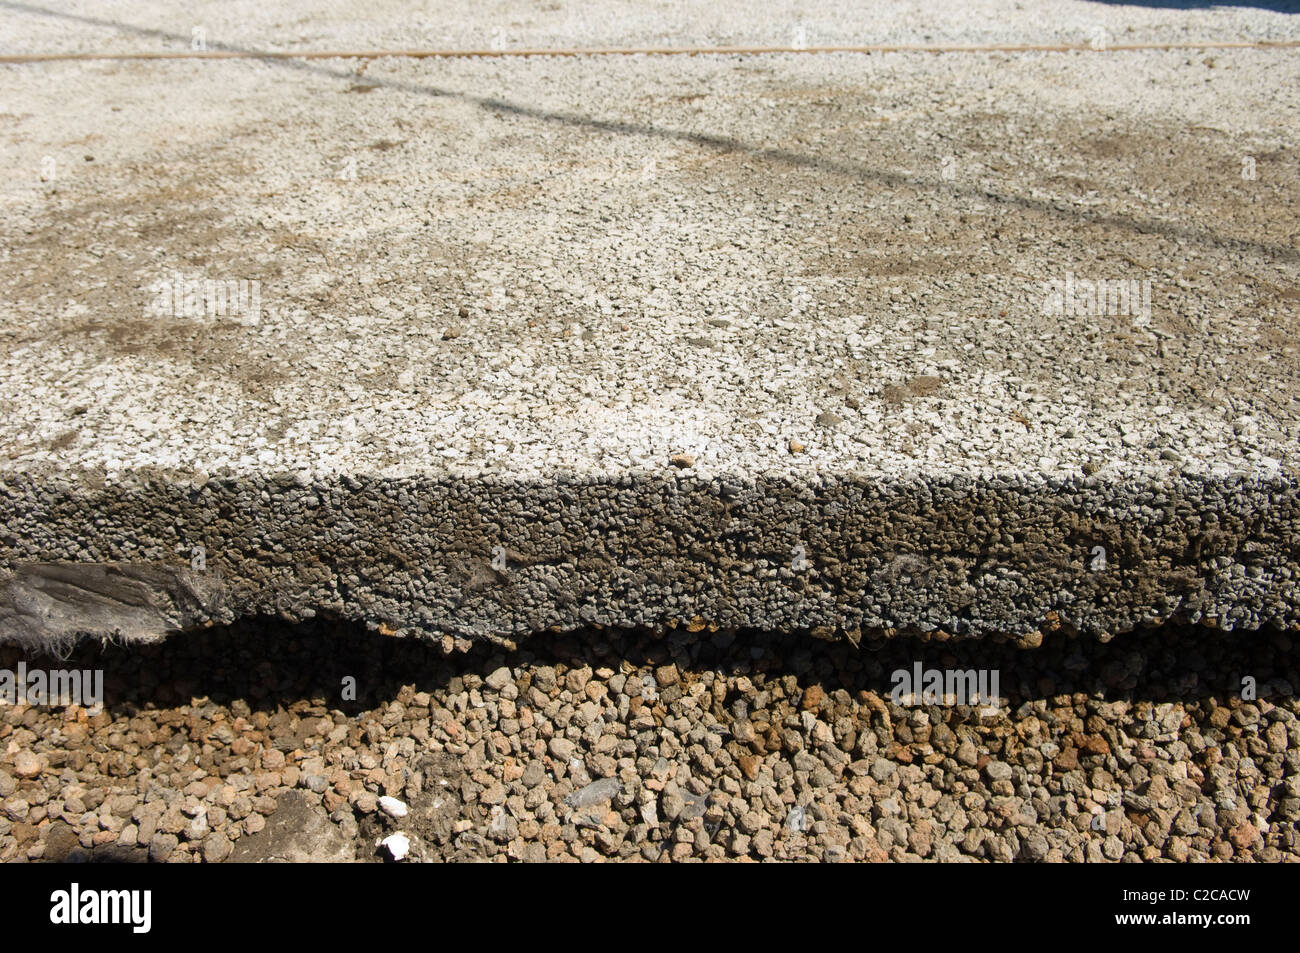 First pervious concrete pour in a public street in New Orleans, 9th Ward 2011. Project Capstone. - Stock Image